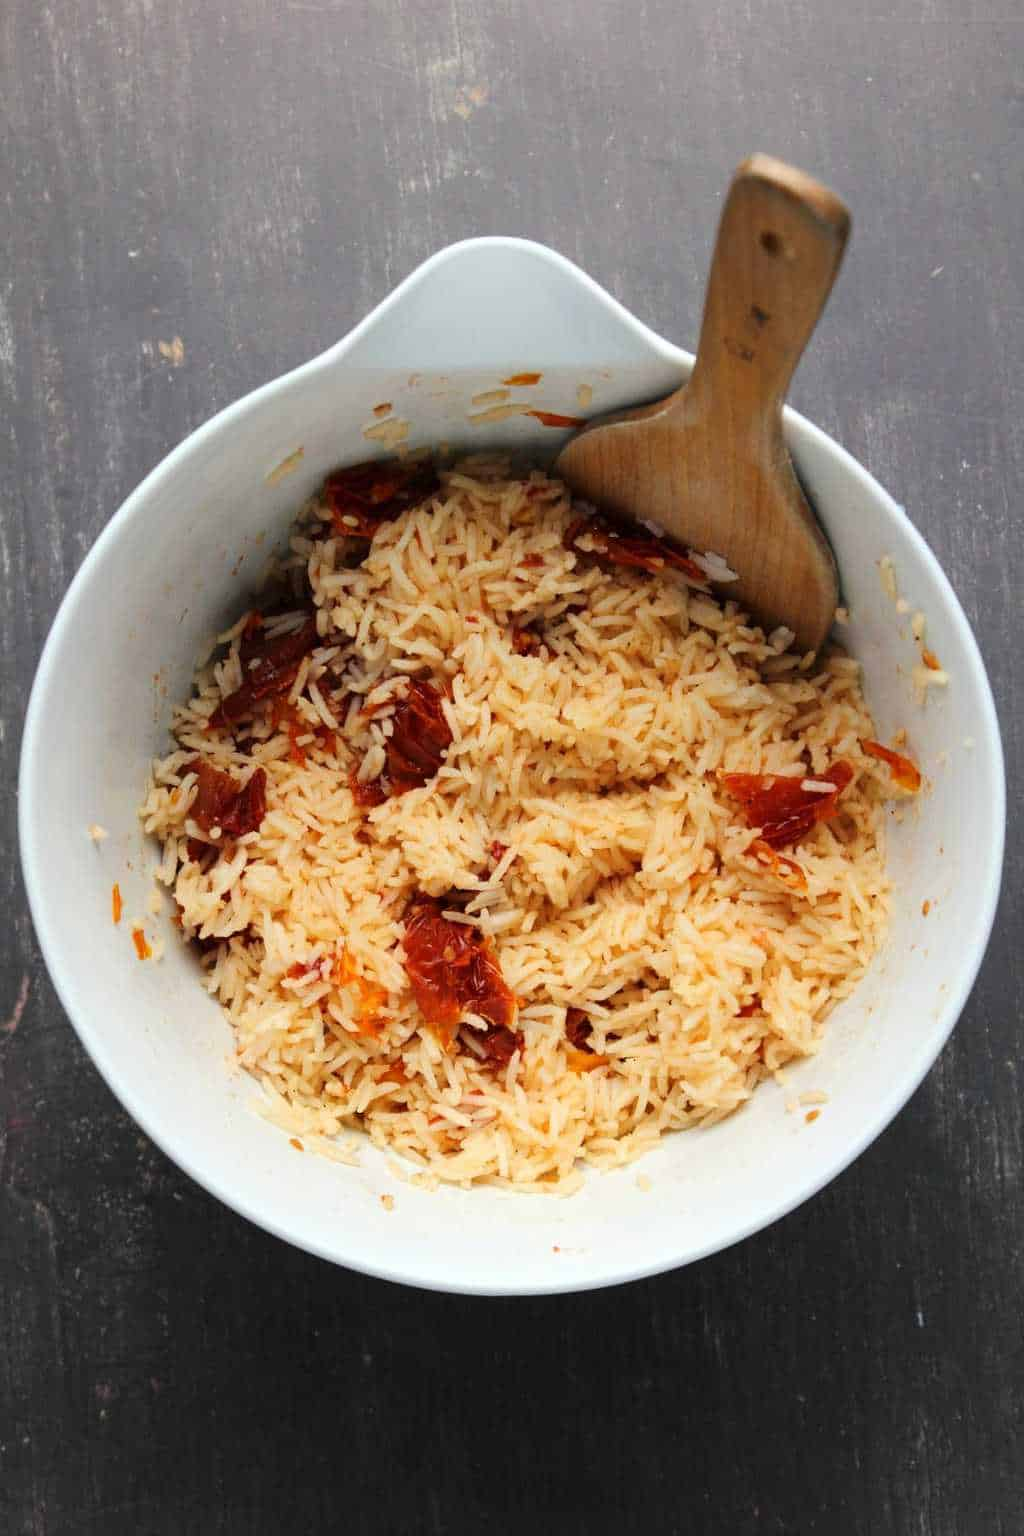 Sundried tomato basmati rice for vegan burritos in a white mixing bowl with a wooden spoon.